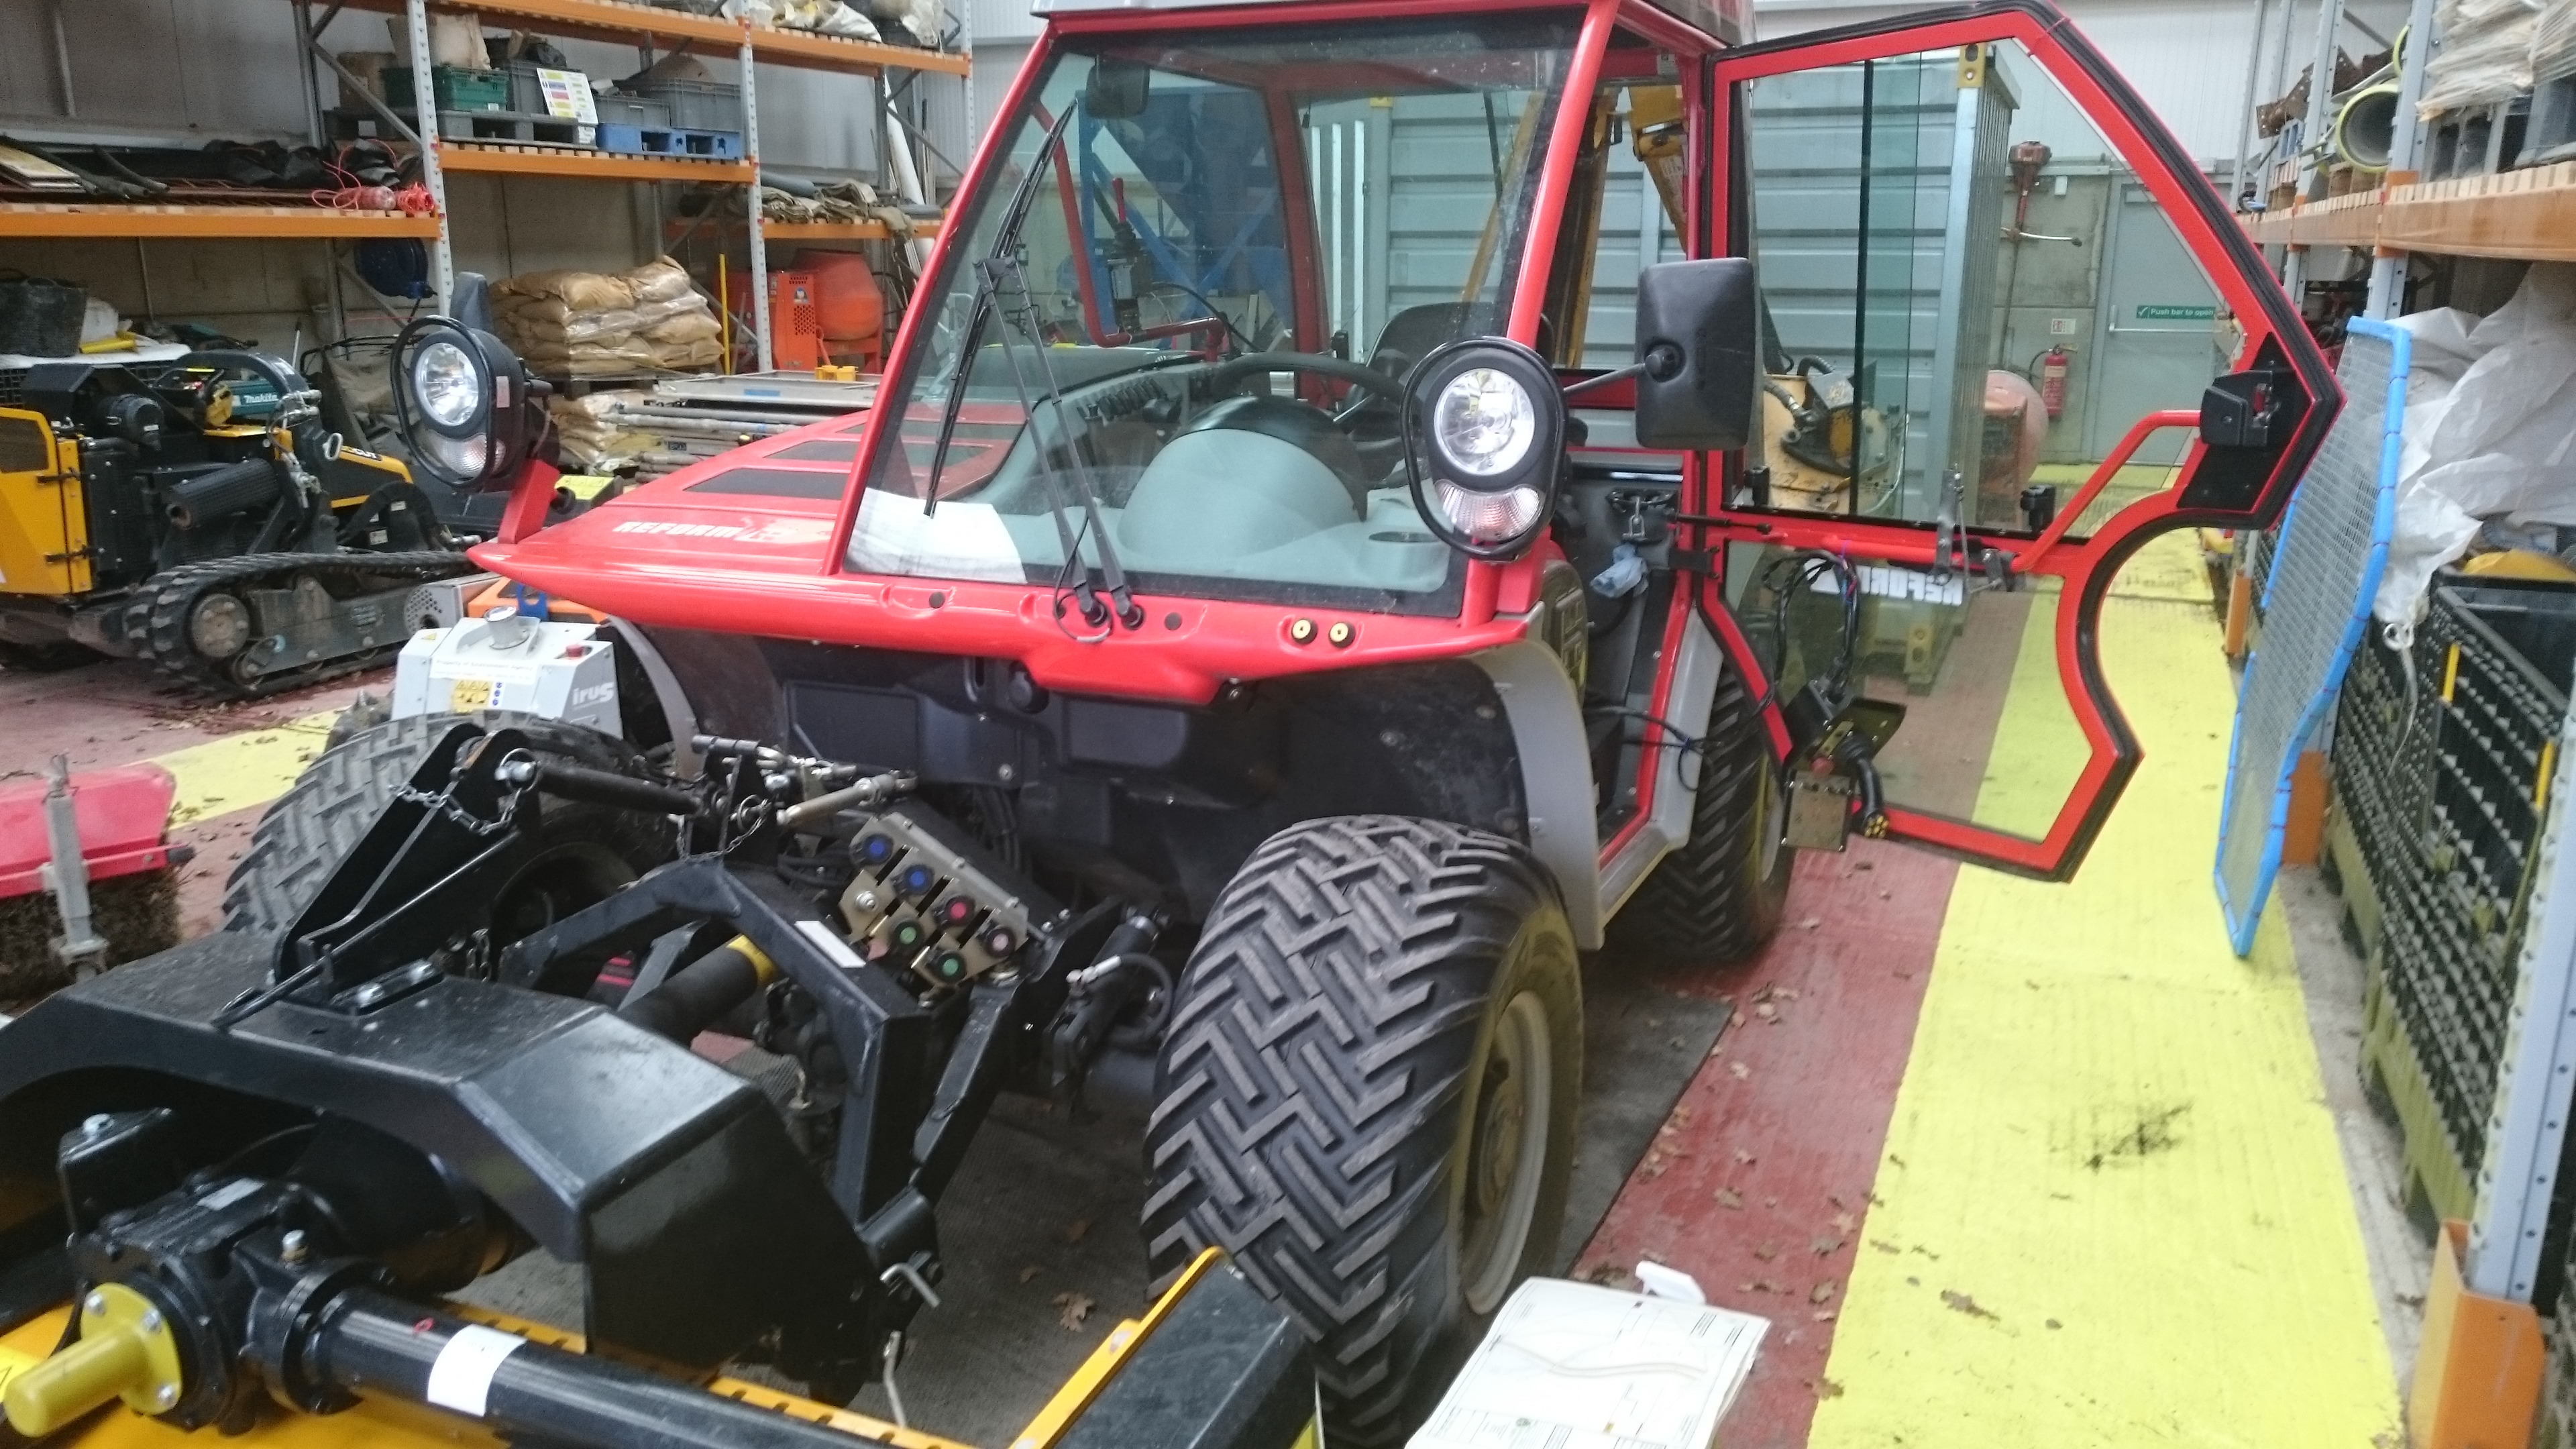 Reform tractor safety window film application to glass to strengthen by Tinting Express Devon